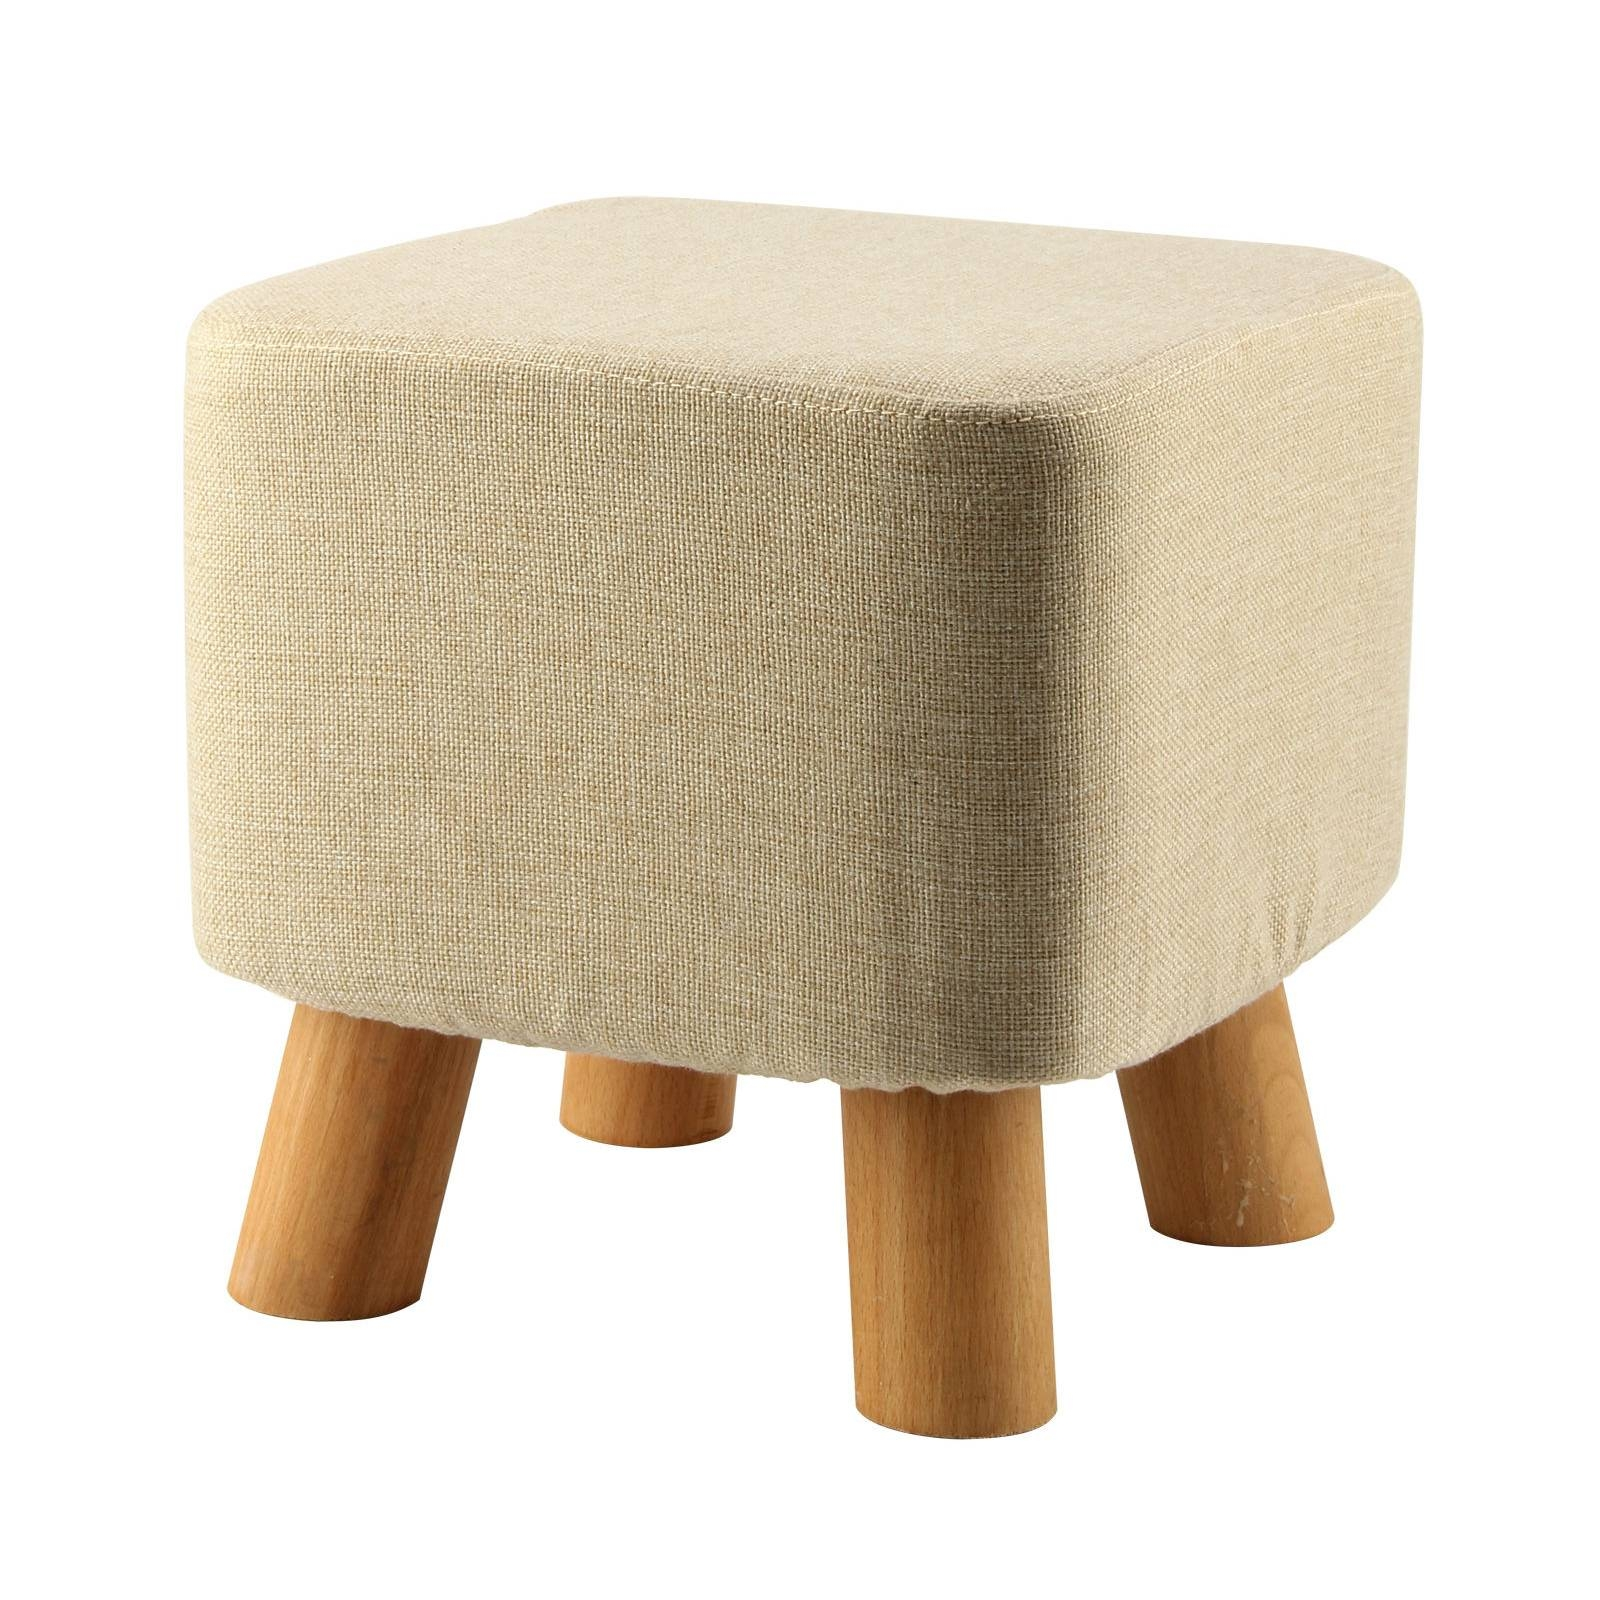 Popular Wooden Footstools-Buy Cheap Wooden Footstools Lots From within Upholstered Footstools (Image 16 of 30)